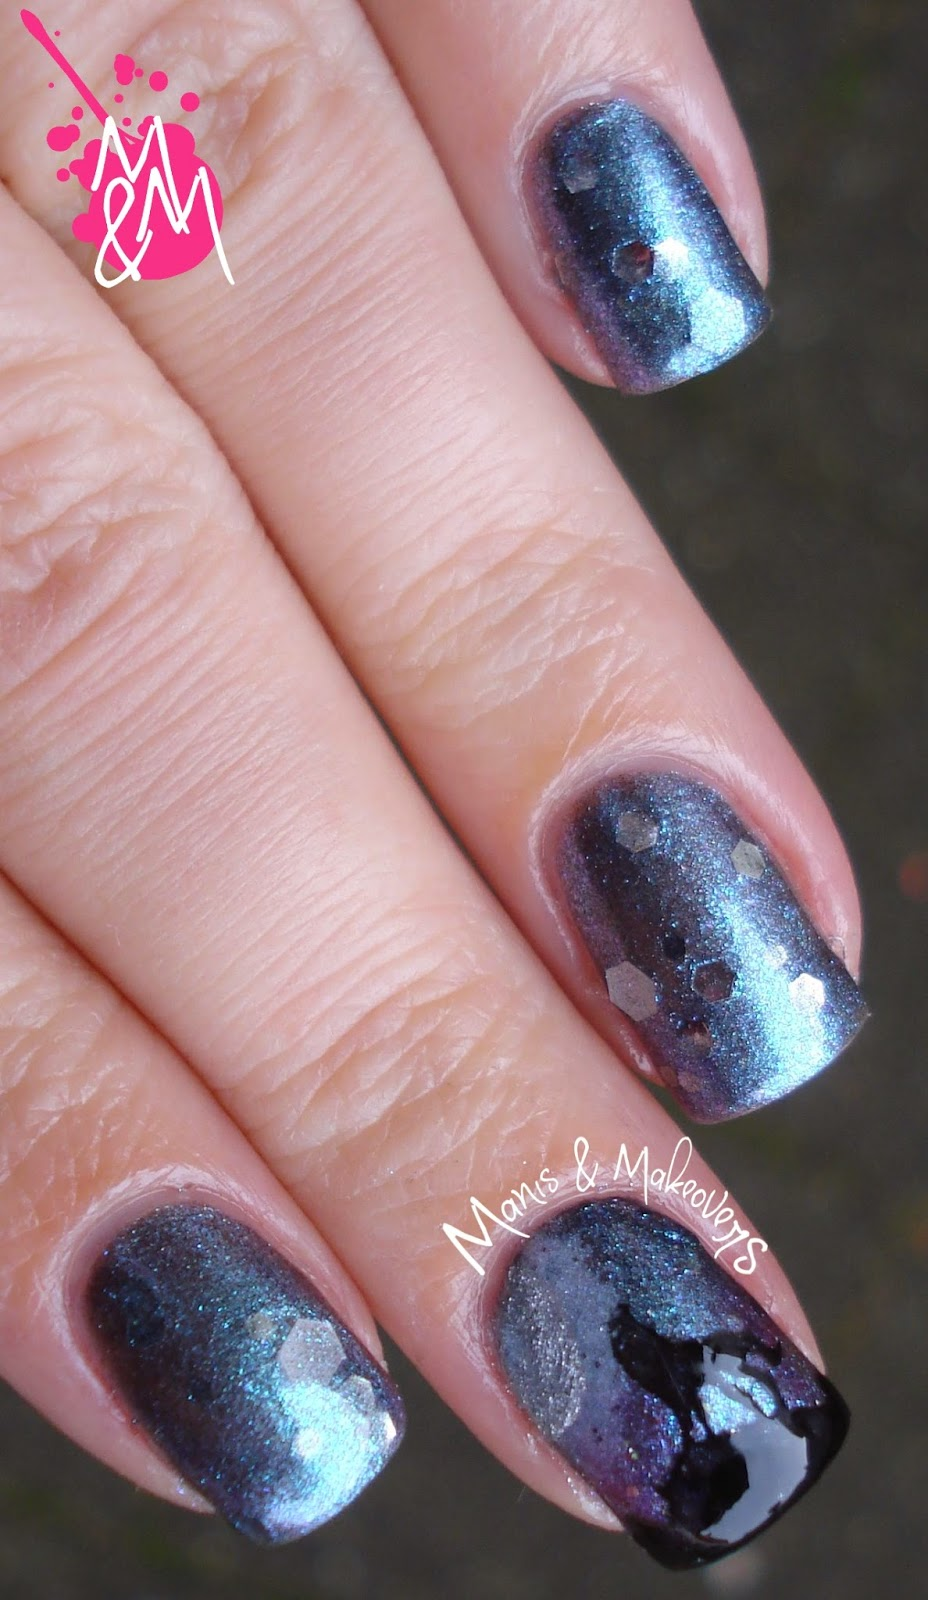 Manis & Makeovers: Incidental Twin \